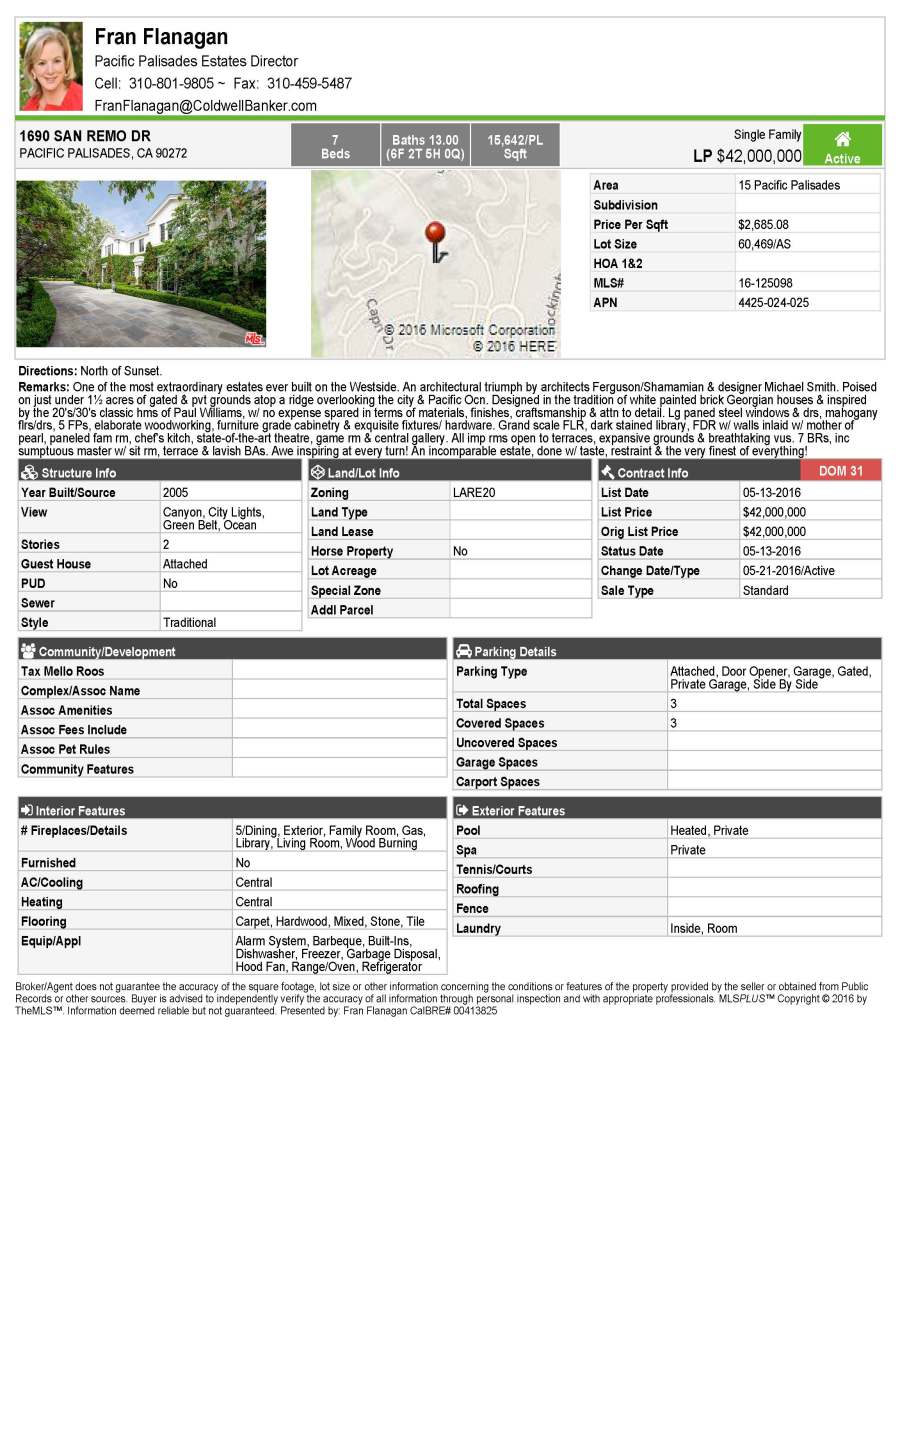 1690 San Remo MLS_Page_1